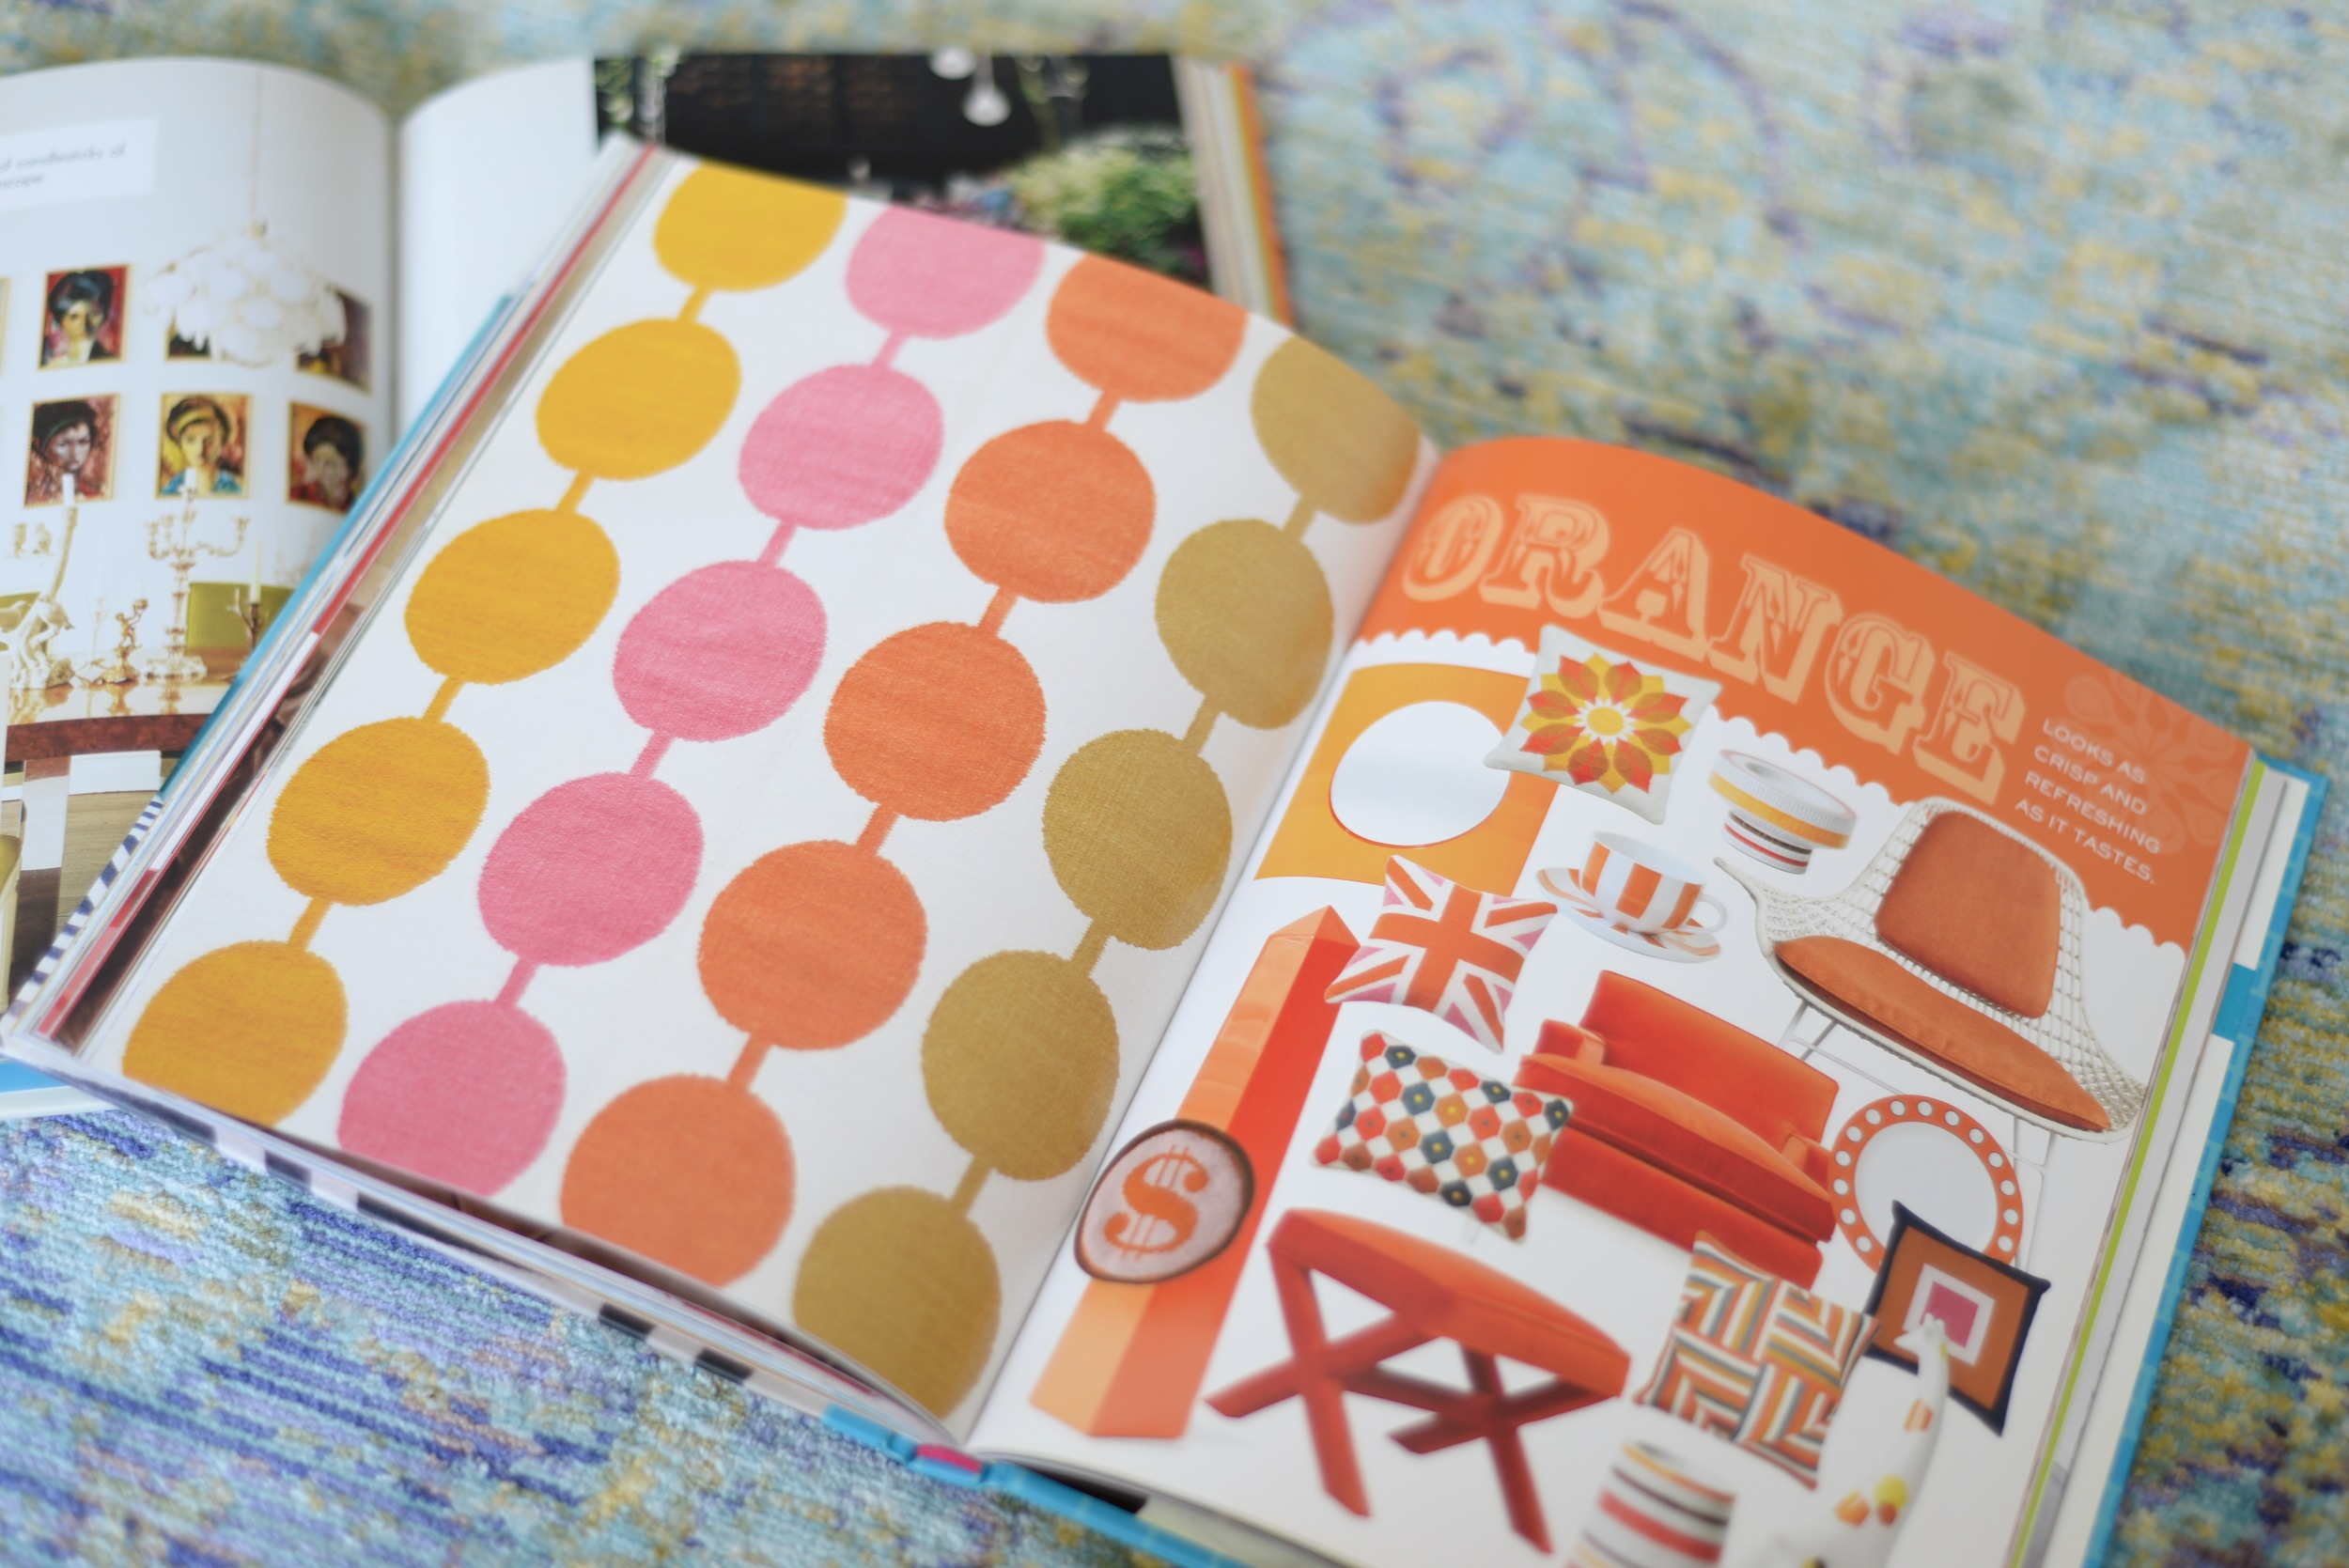 jonathan adler book, jonathan adler happy chic